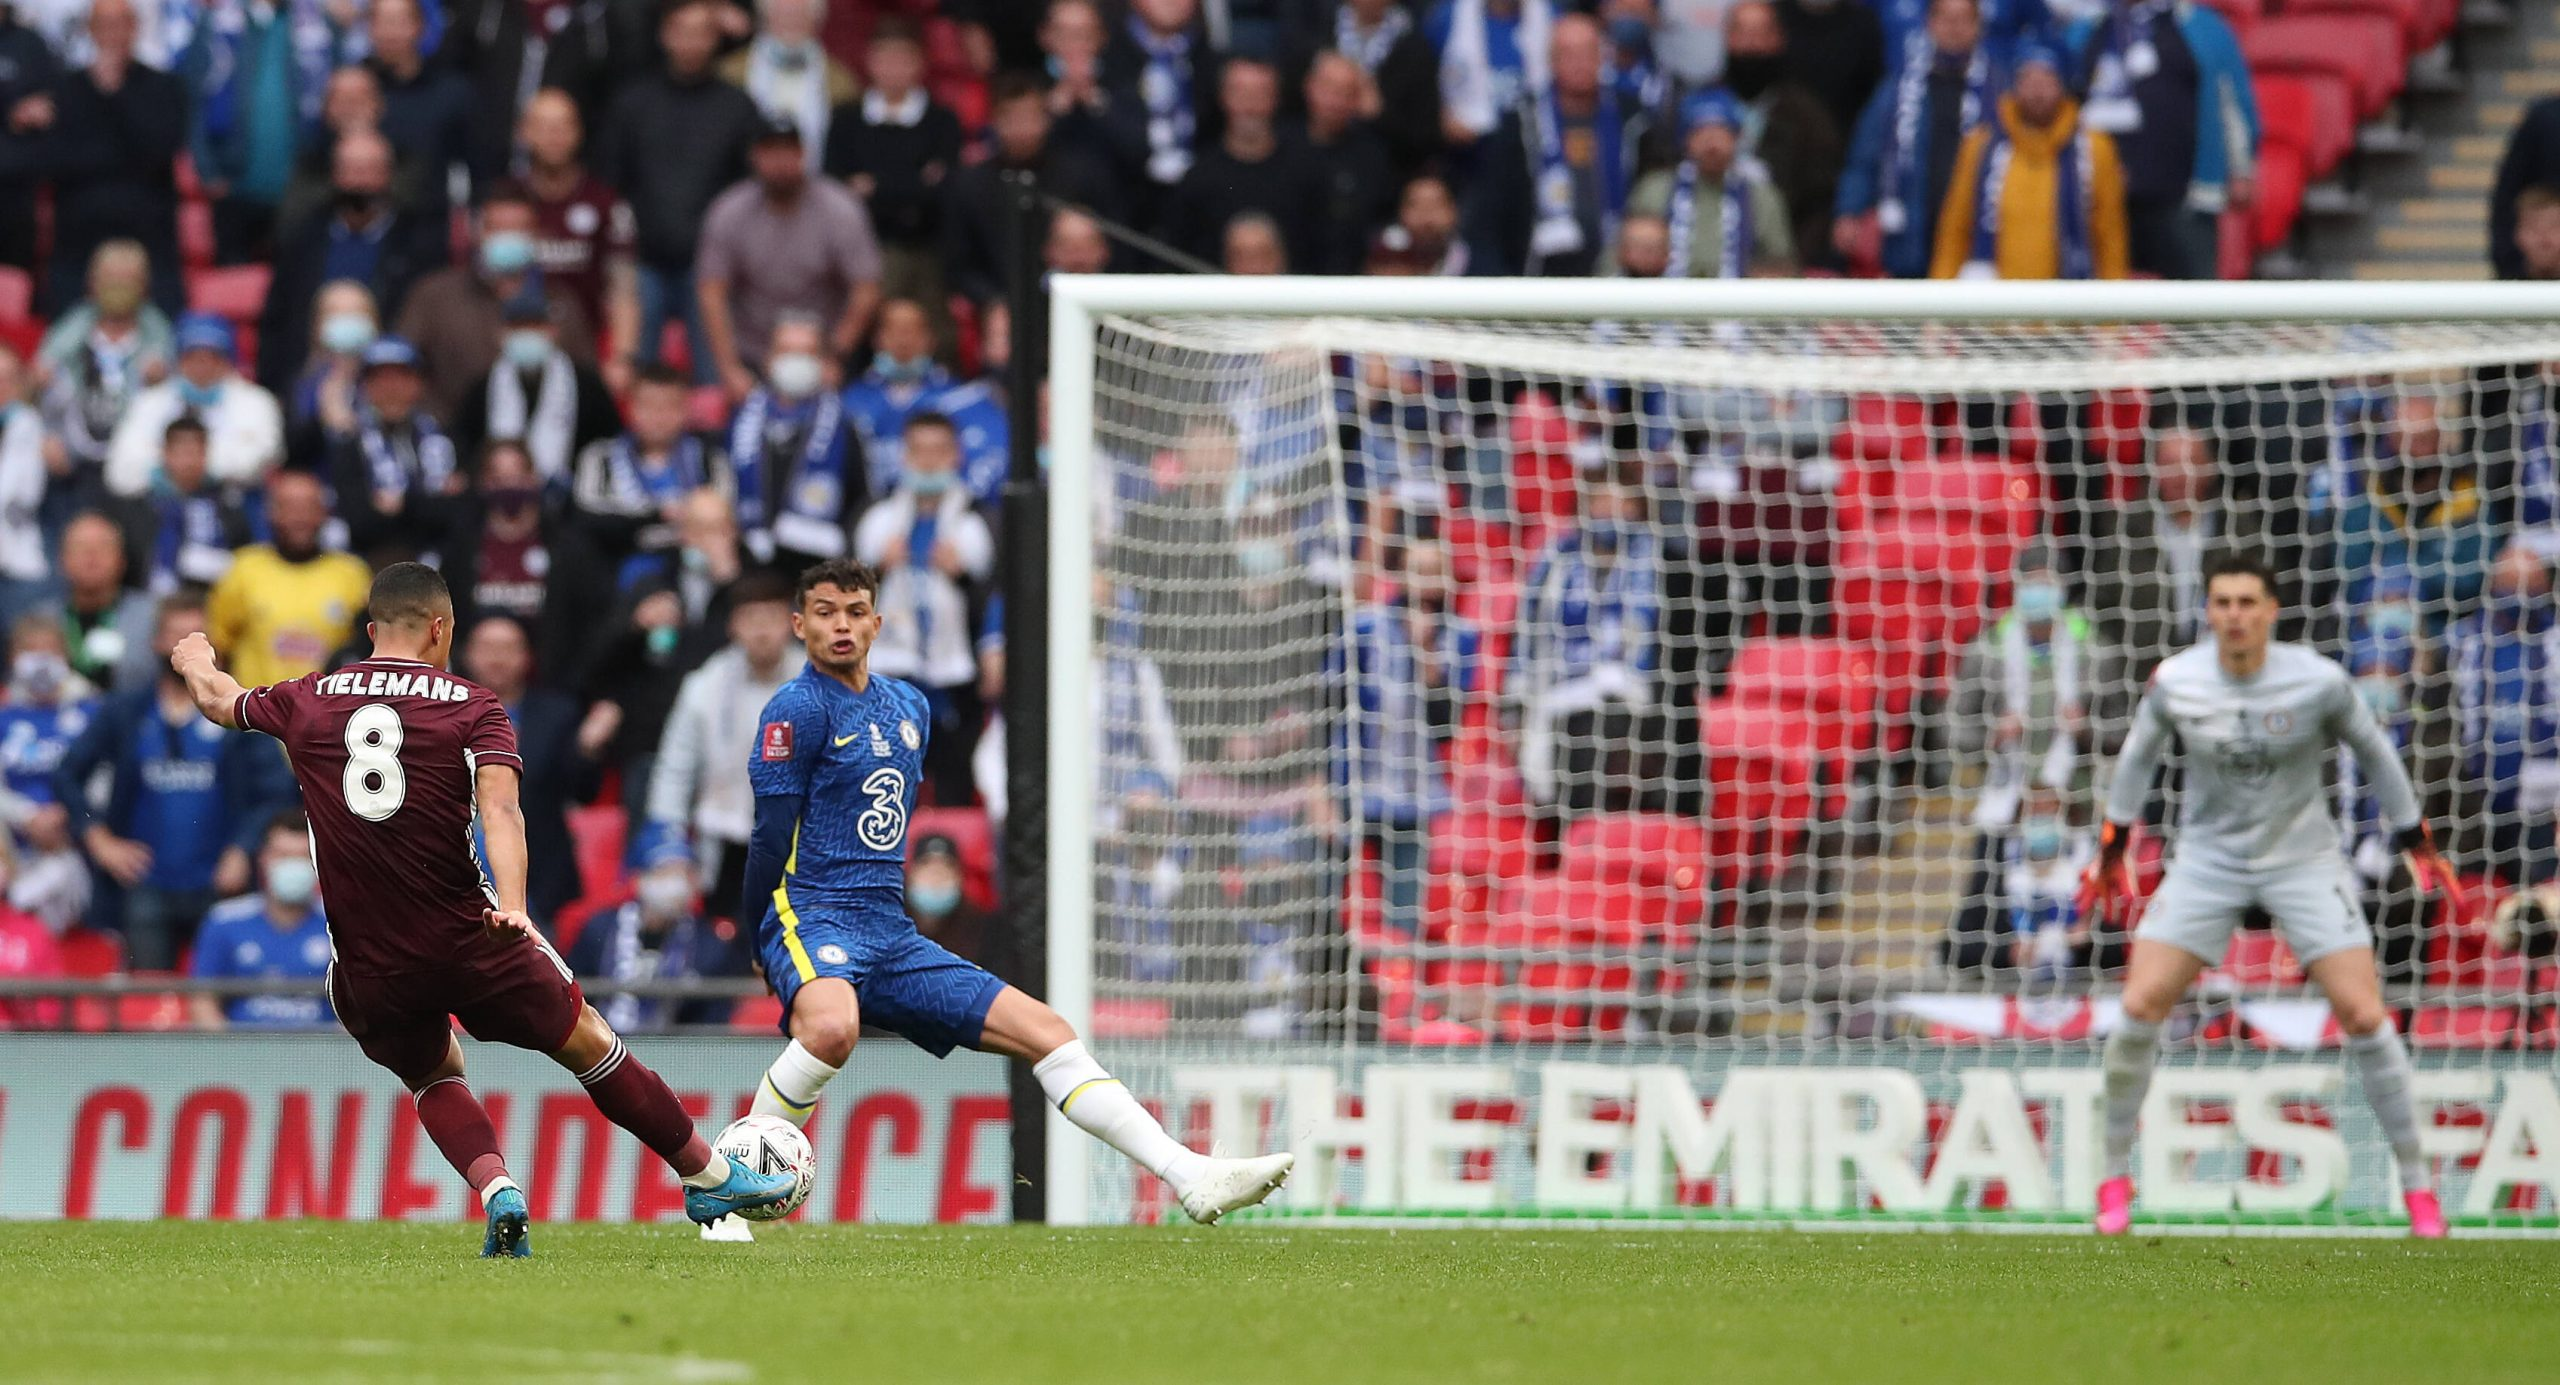 Youri Tielemans scored a screamer against Chelsea in the FA Cup final.